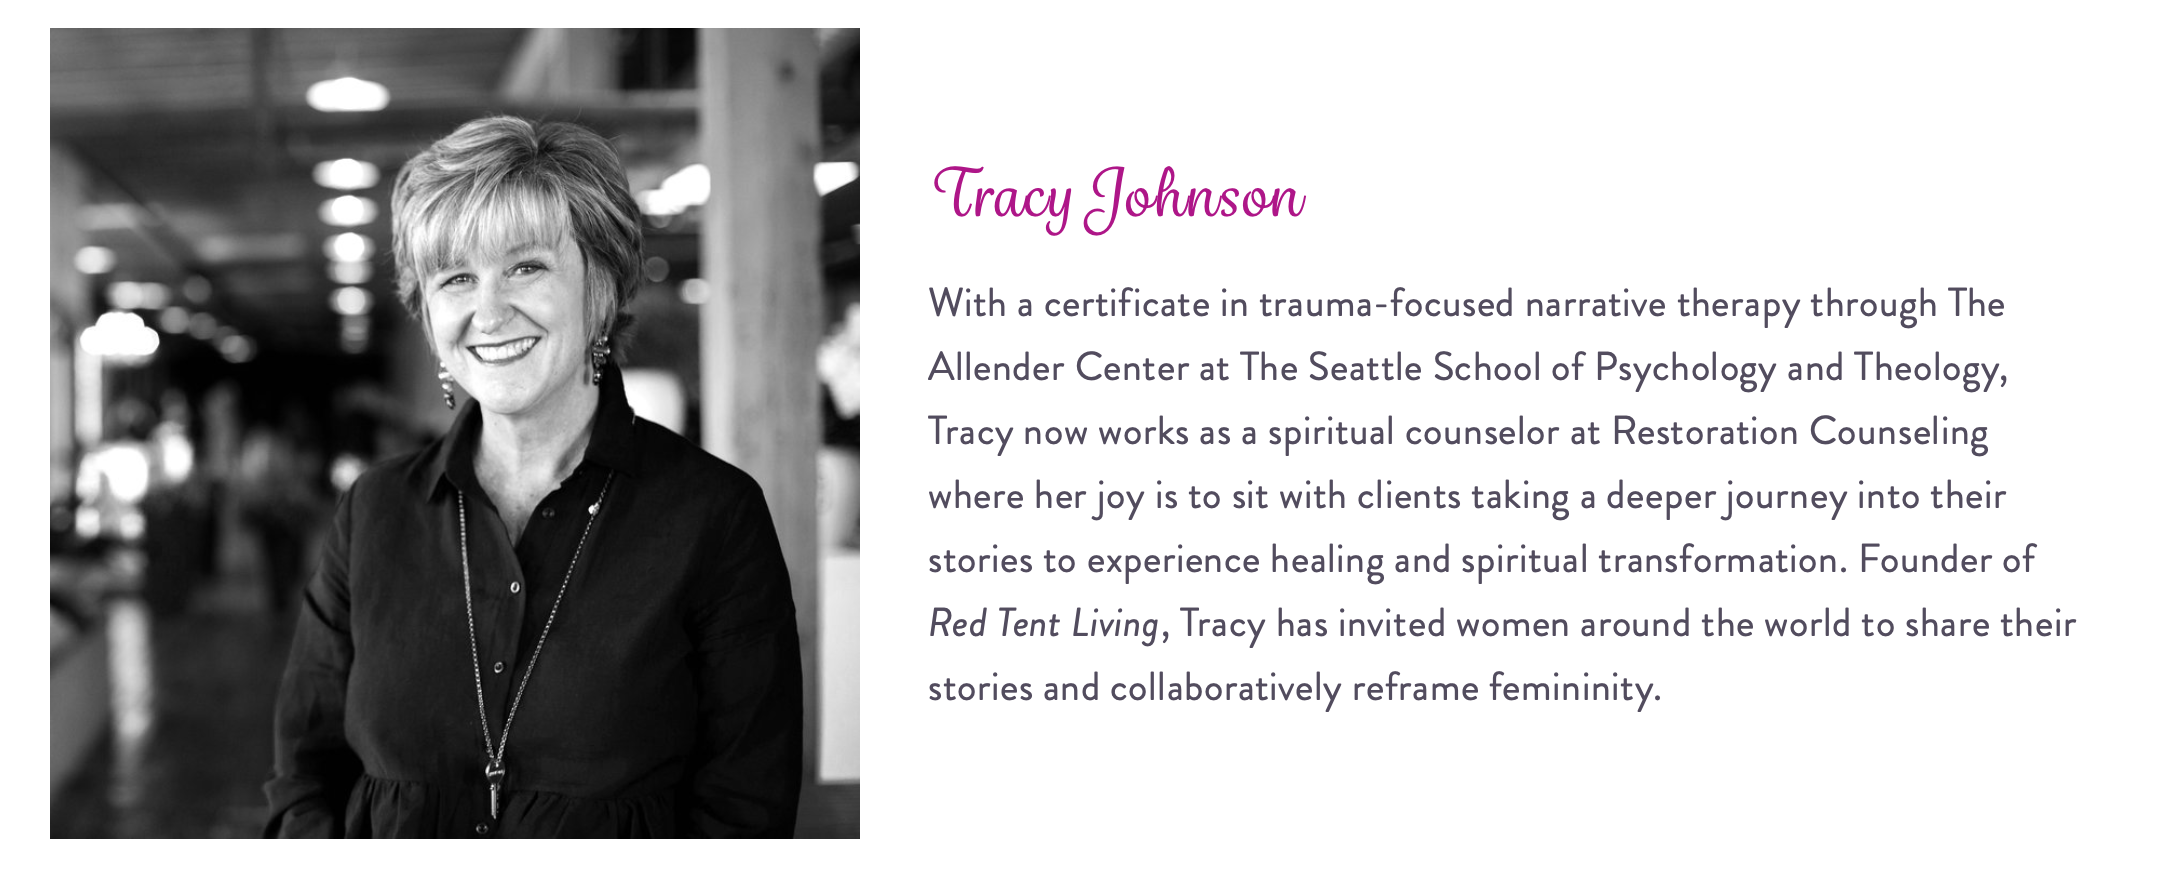 With a certificate in trauma-focused narrative therapy through The Allender Center at The Seattle School of Psychology and Theology, Tracy now works as a spiritual counselor at Restoration Counseling where her joy is to sit with clients taking a deeper journey into their stories to experience healing and spiritual transformation. Founder of Red Tent Living, Tracy has invited women around the world to share their stories and collaboratively reframe femininity.